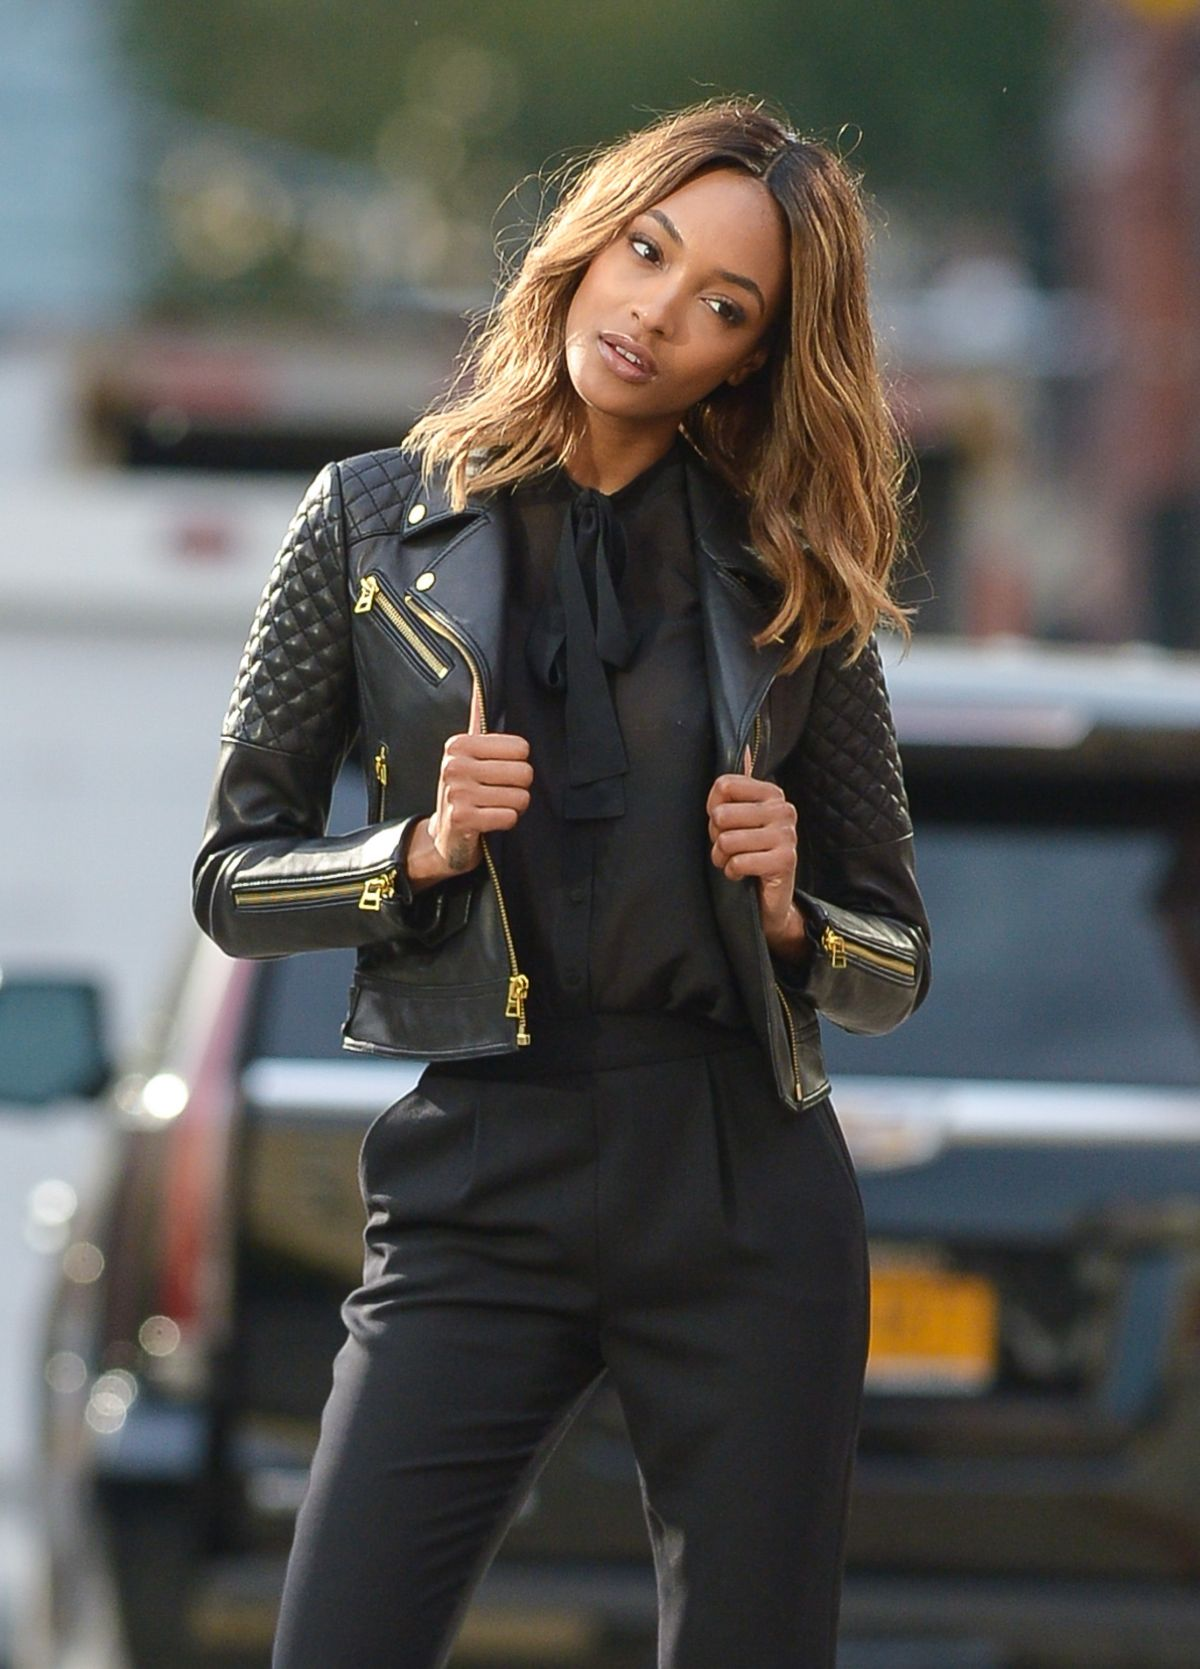 JOURDAN DUNN on the Set of a Photoshoot in New York 10/22/2015